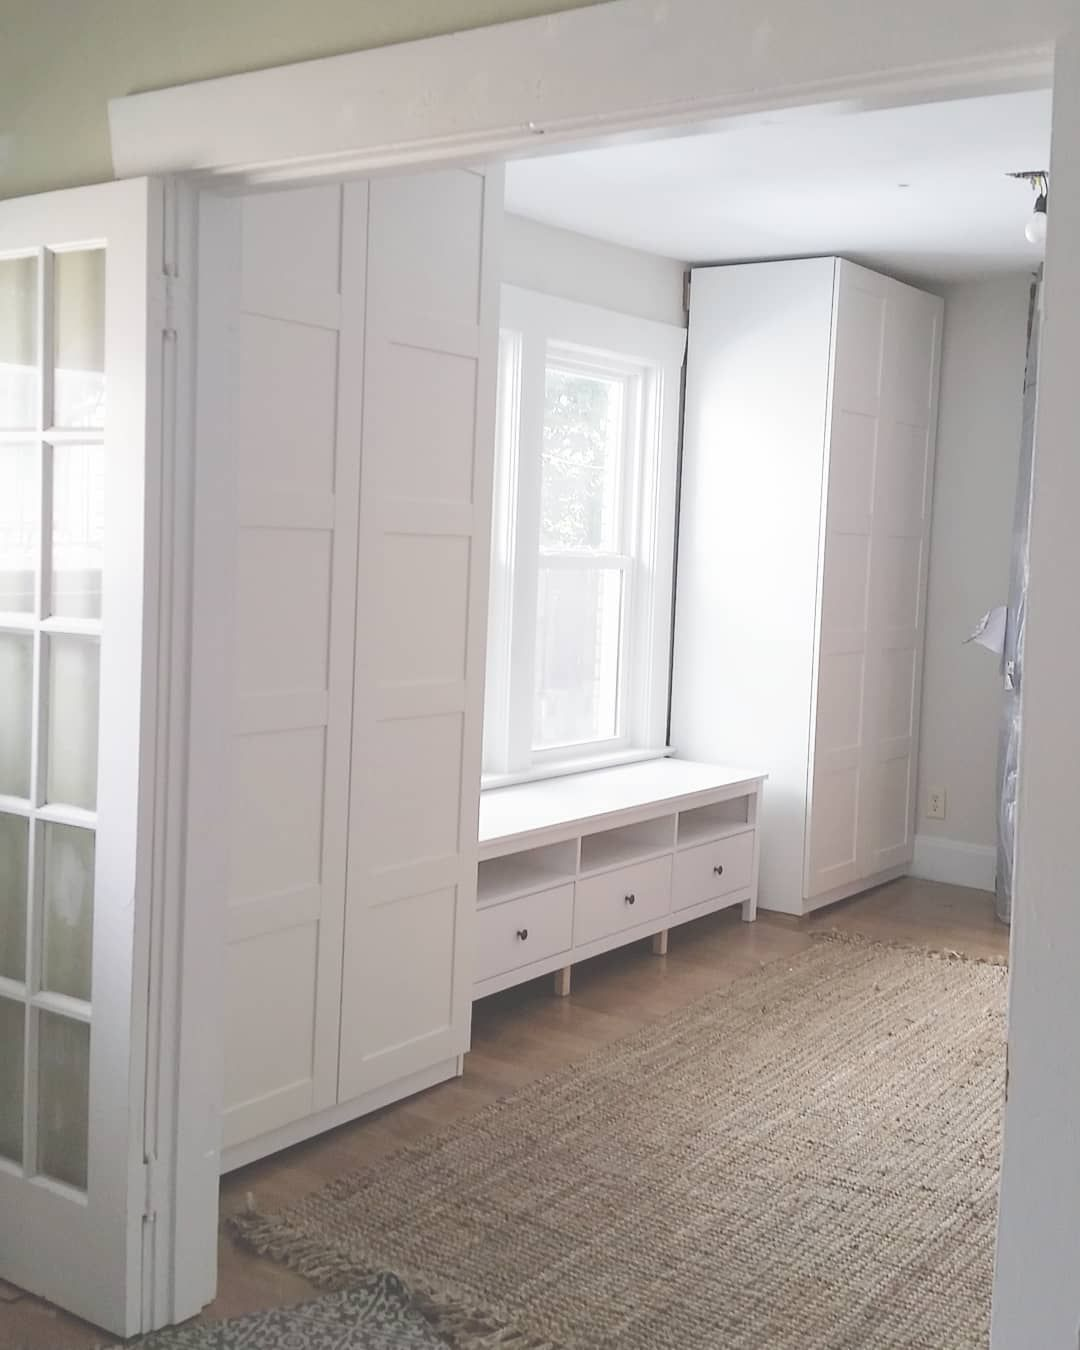 Hemnes Tv Kast Ikea.Ikea Pax Wardrobes And Hemnes Tv Stand As Dining Room Built Ins